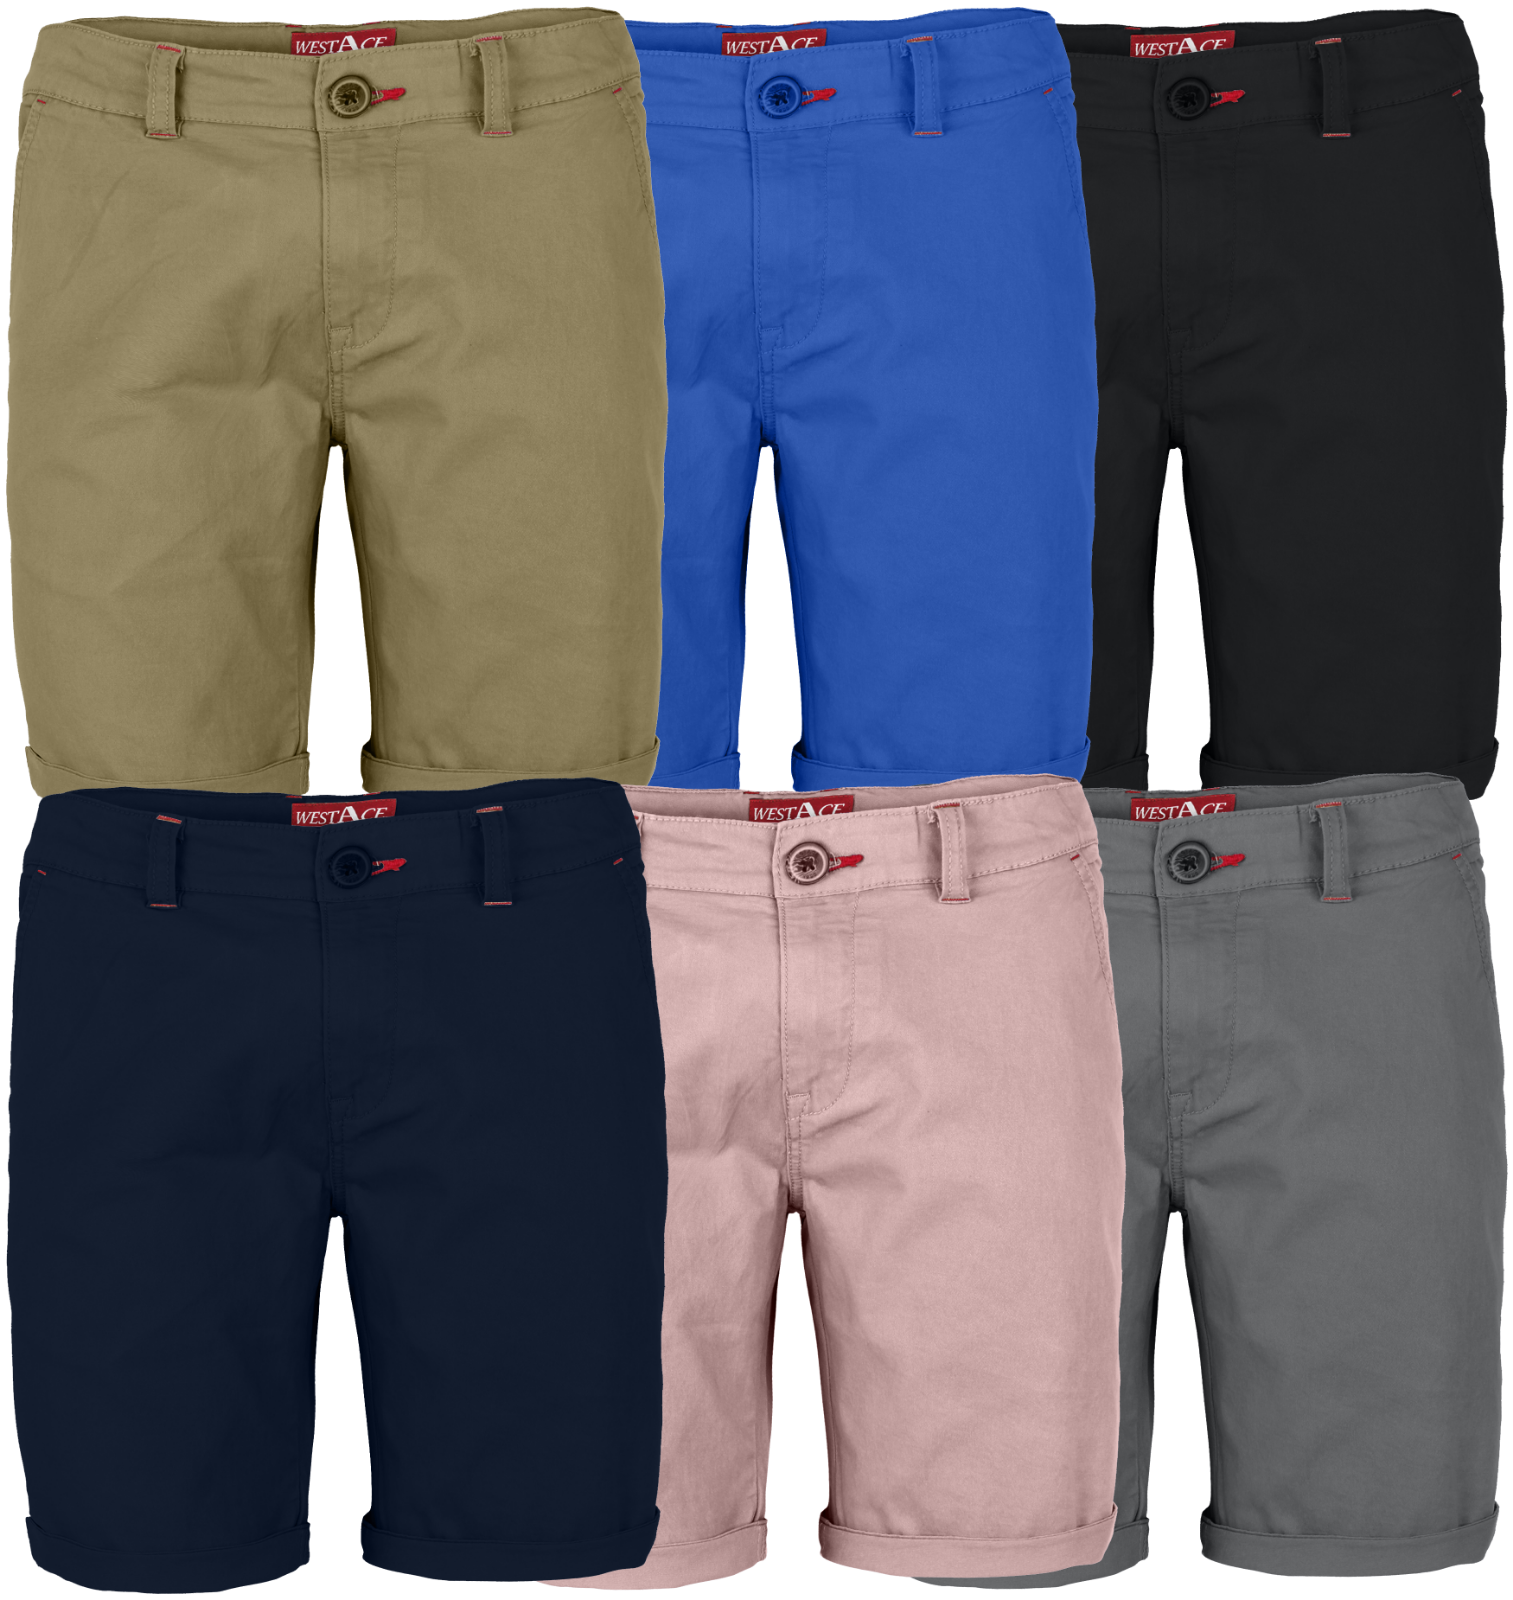 Mens Stretch Shorts Casual Wear Chino Flat Front Slim Fit Half Pants Clothing, Shoes & Accessories